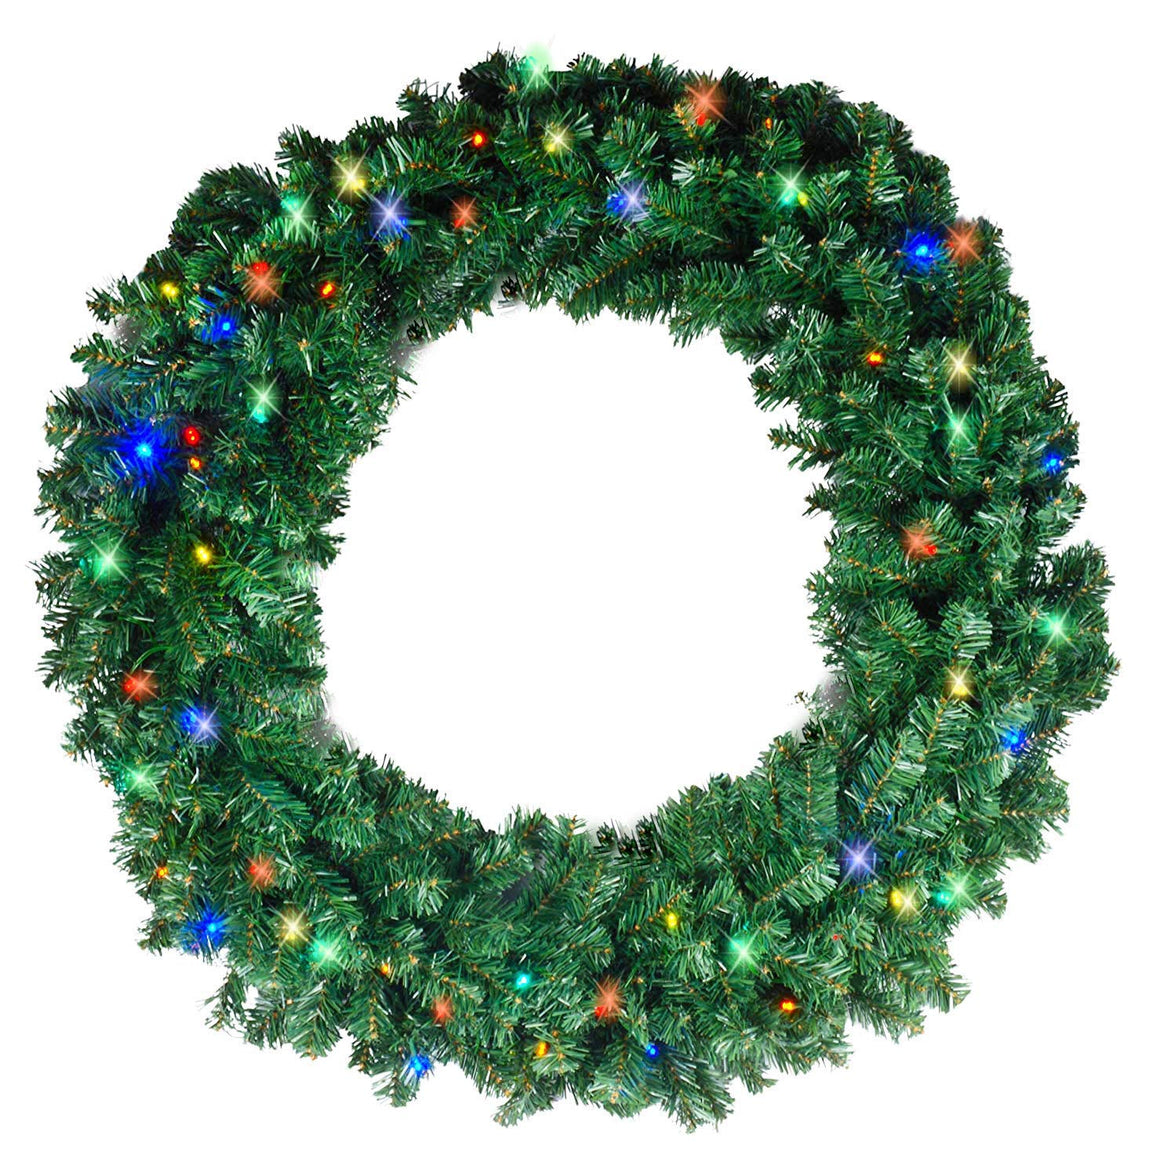 Ten Waterloo 34 Inch Large Balsam Pine Christmas Wreath with 360 Tips and 60 Multi LED Lights - Battery Operated with Timer - Artificial Pine Wreath